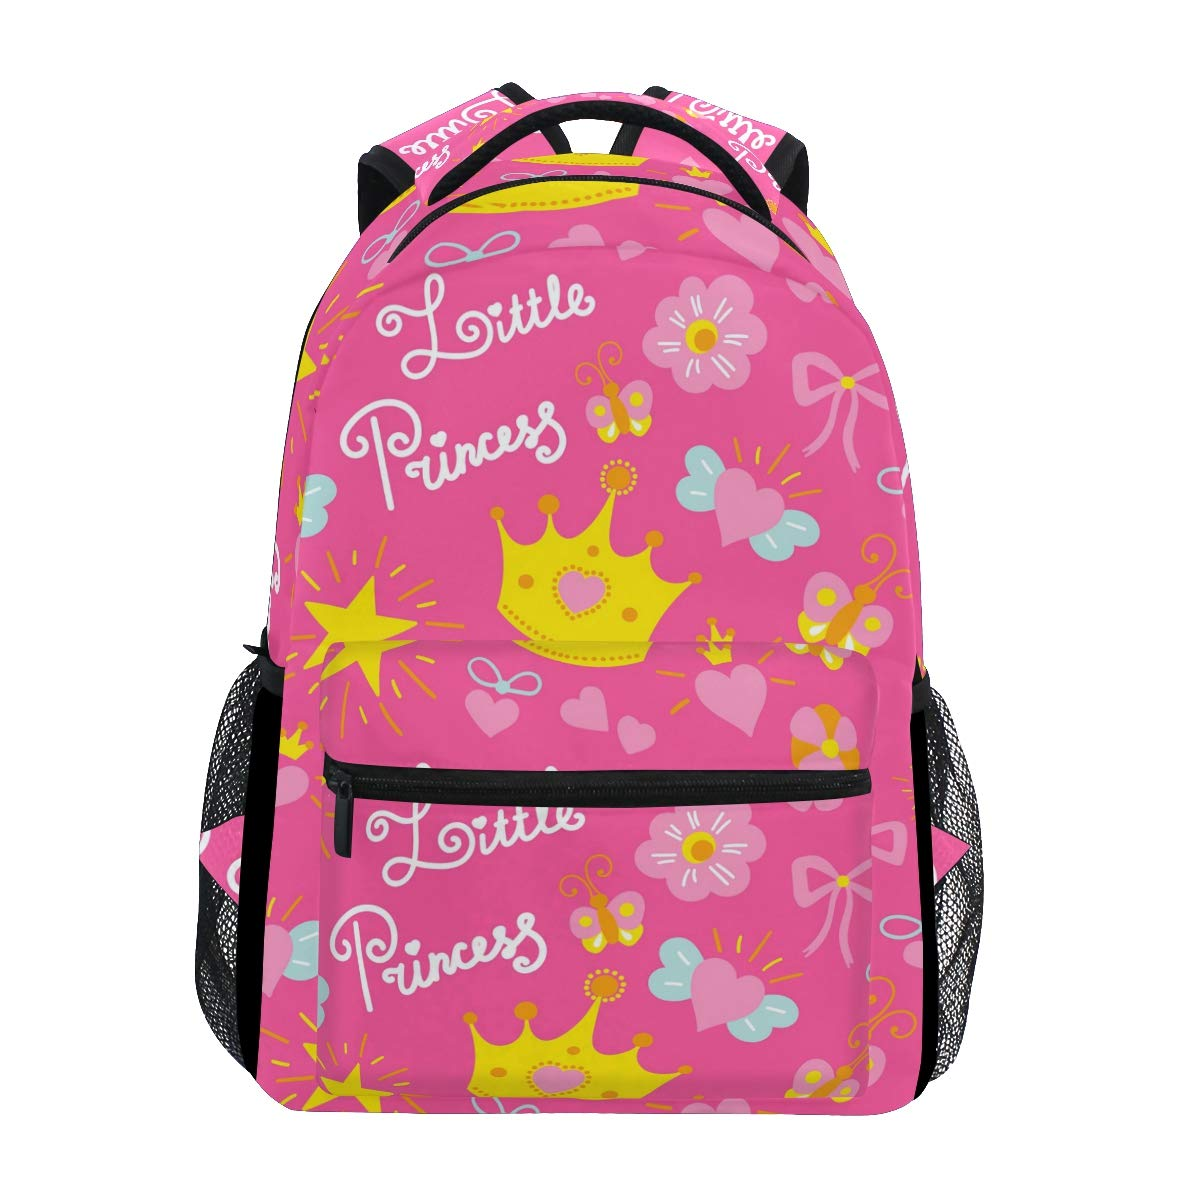 814b359d89a1 Backpack pink yellow crown flowers little princess canvas school bags kids  backpacks jpg 1200x1200 Princess peach